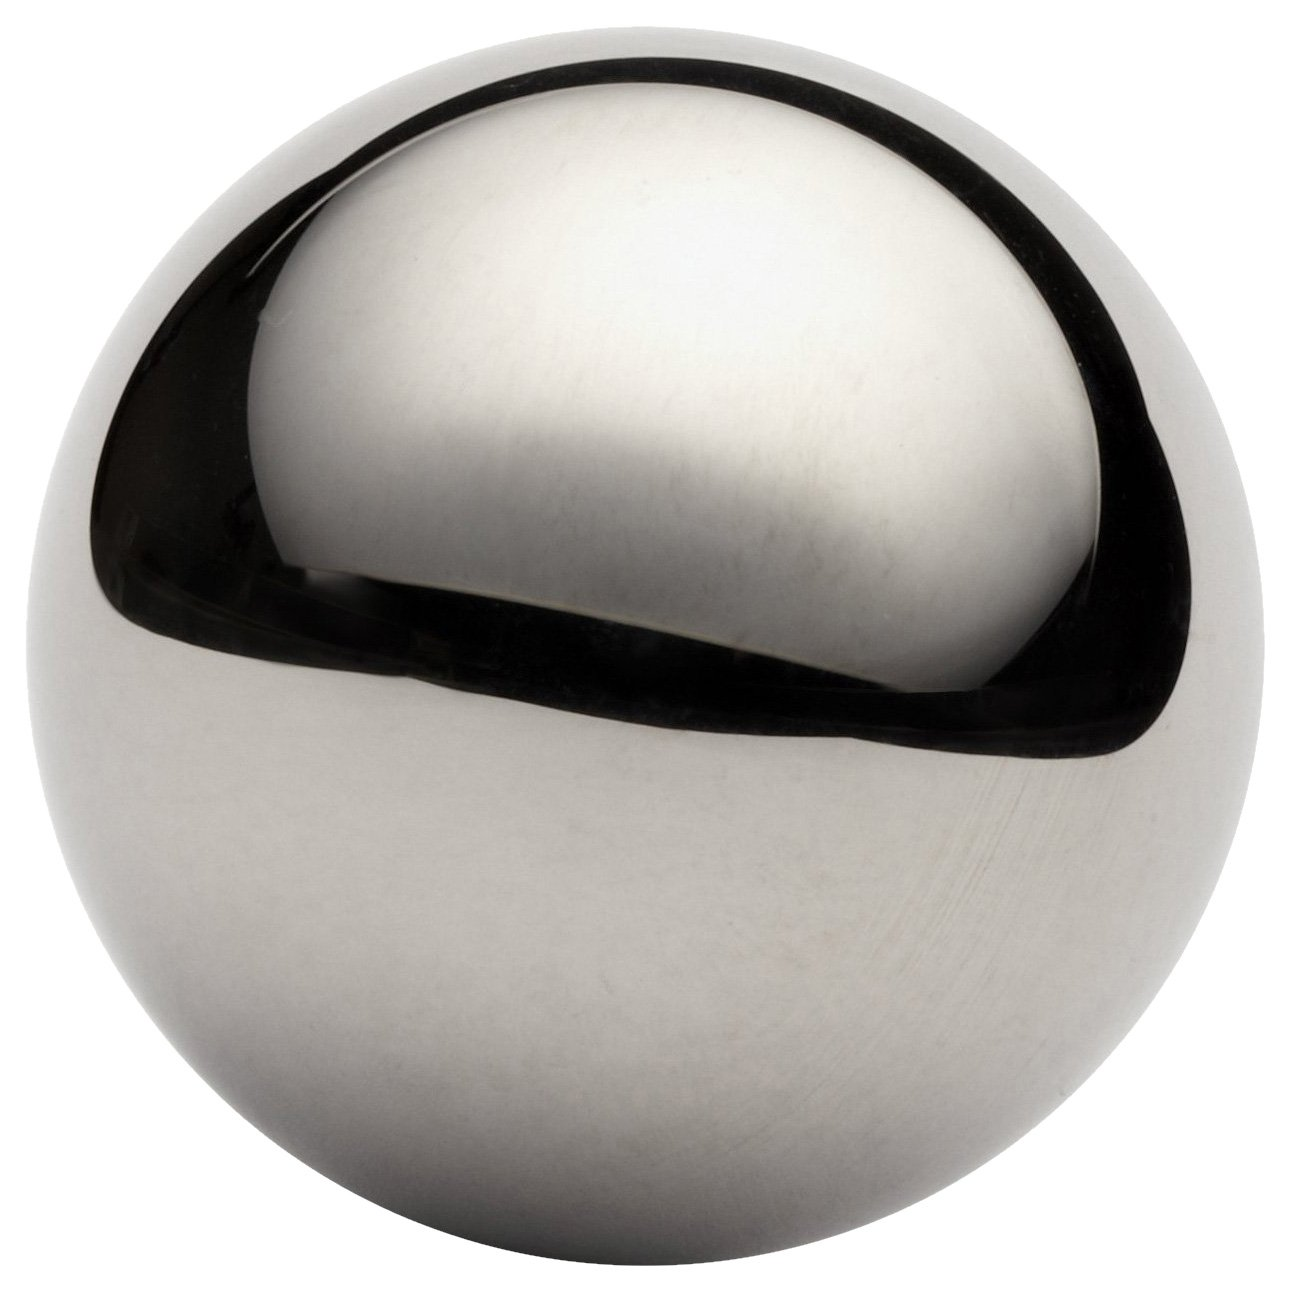 Tungsten Carbide Sphere, Grade G25, Precision